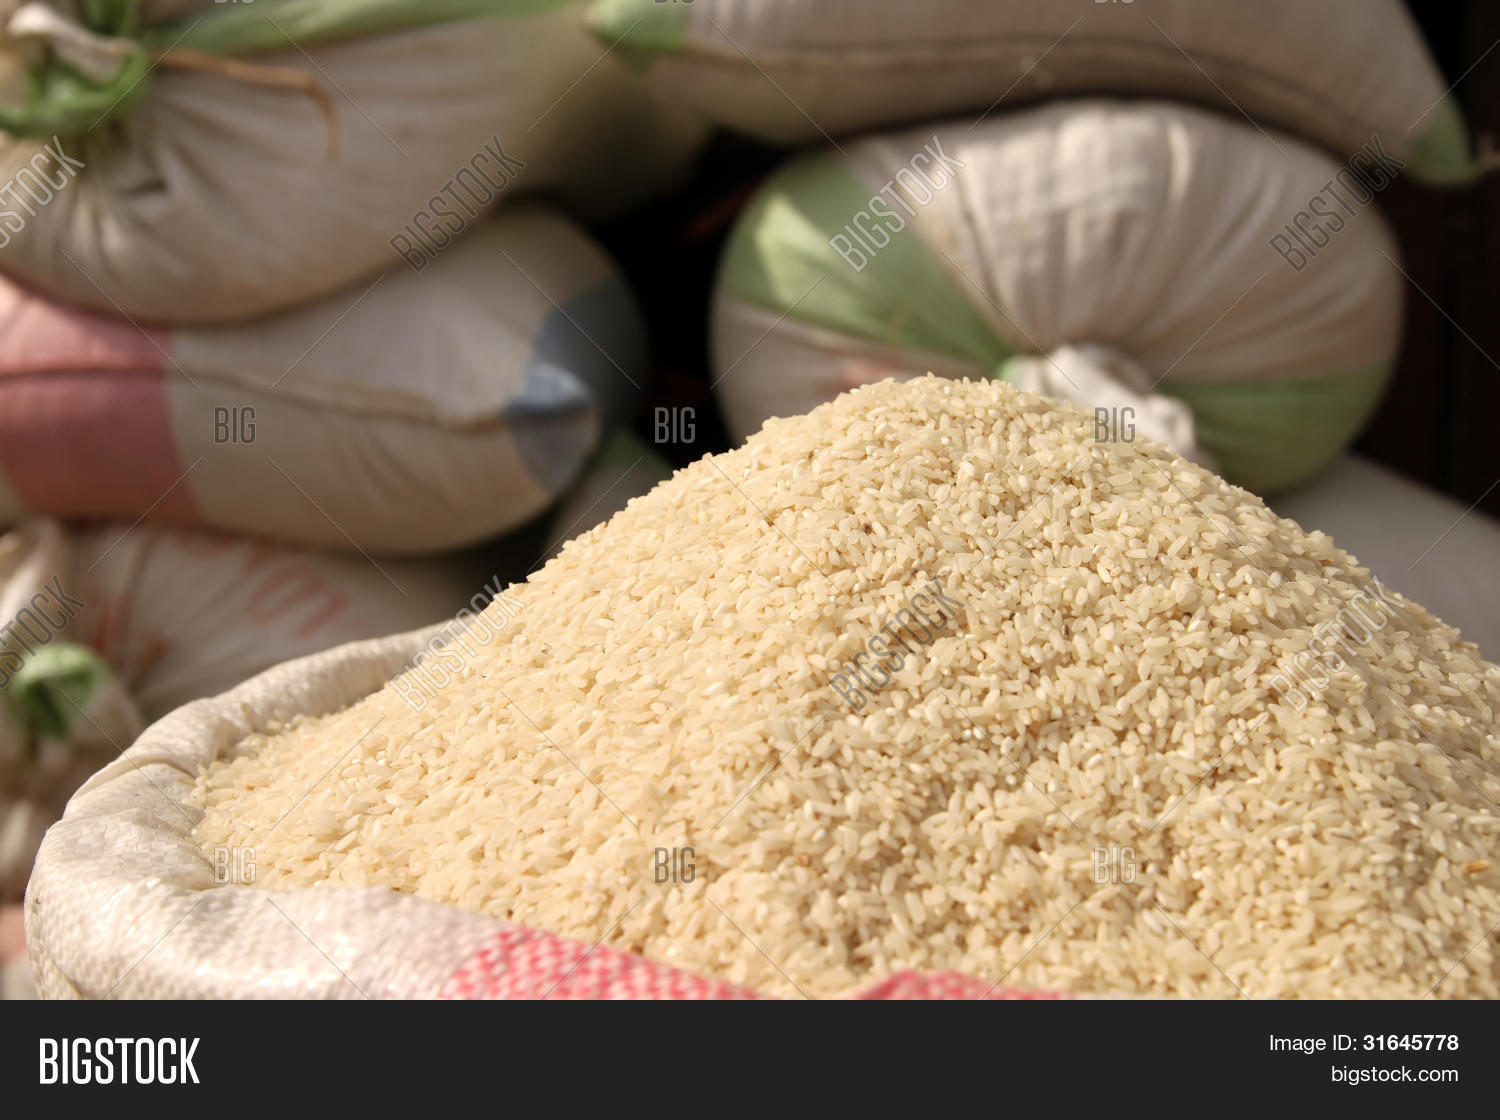 Bags Rice Sale Image Photo Free Trial Bigstock